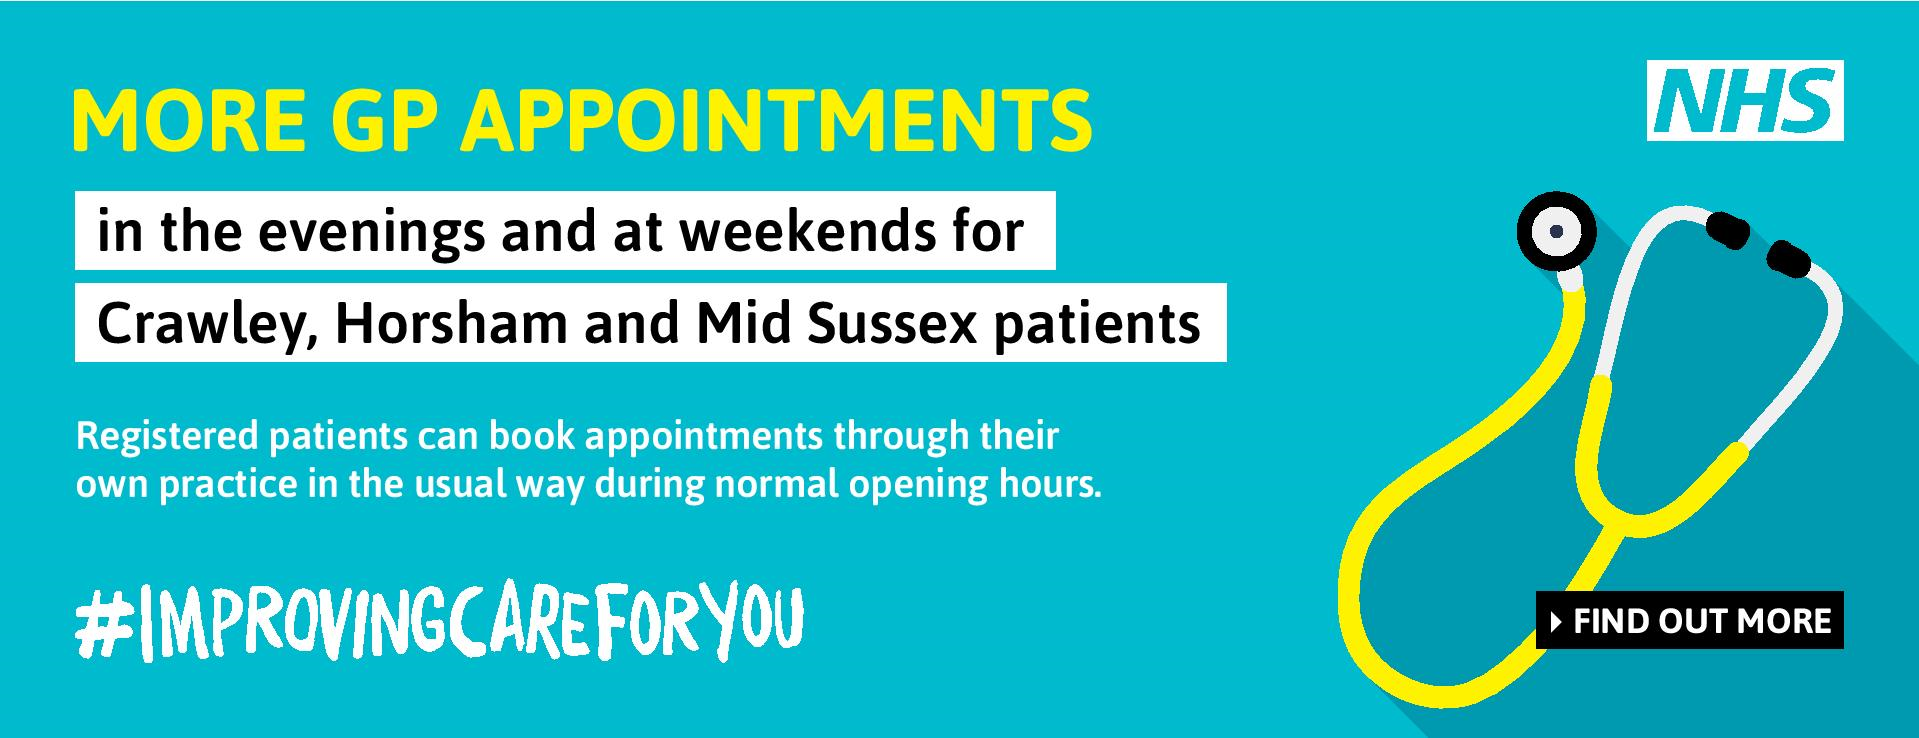 Gossops Green Medical Information About The Doctors Surgery Opening Hours Appointments Online Prescriptions Health Information And Much More